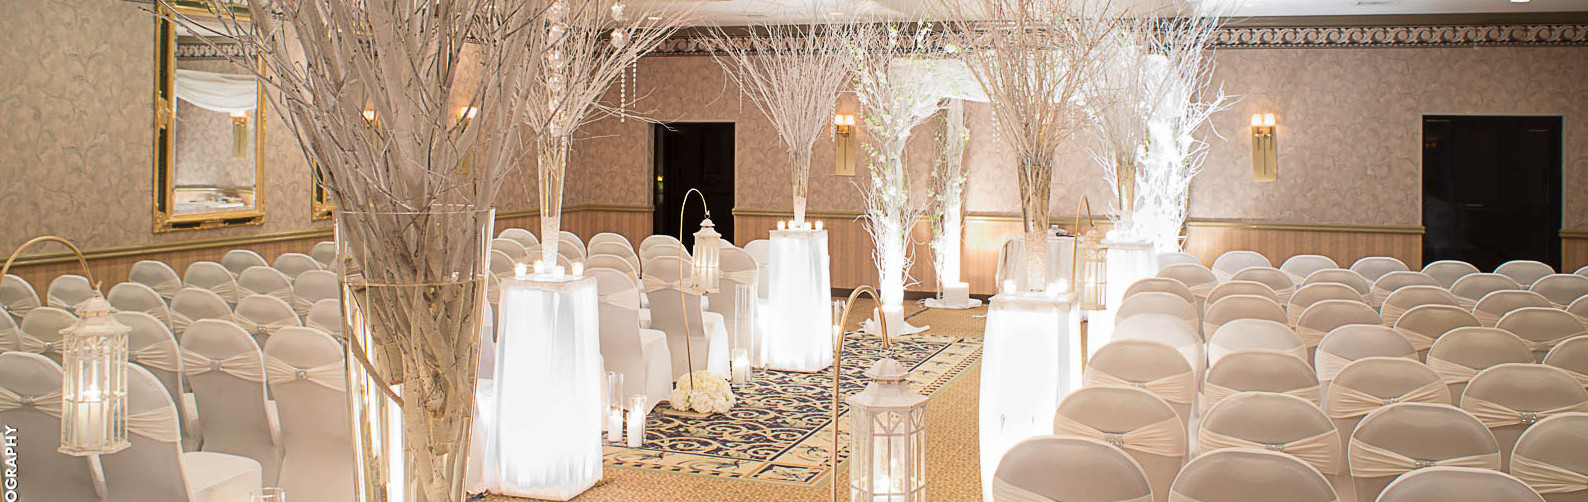 5 tips for picking a new jersey wedding venue east windsor nj 5 tips for picking a new jersey wedding venue east windsor nj windsor ballroom junglespirit Gallery